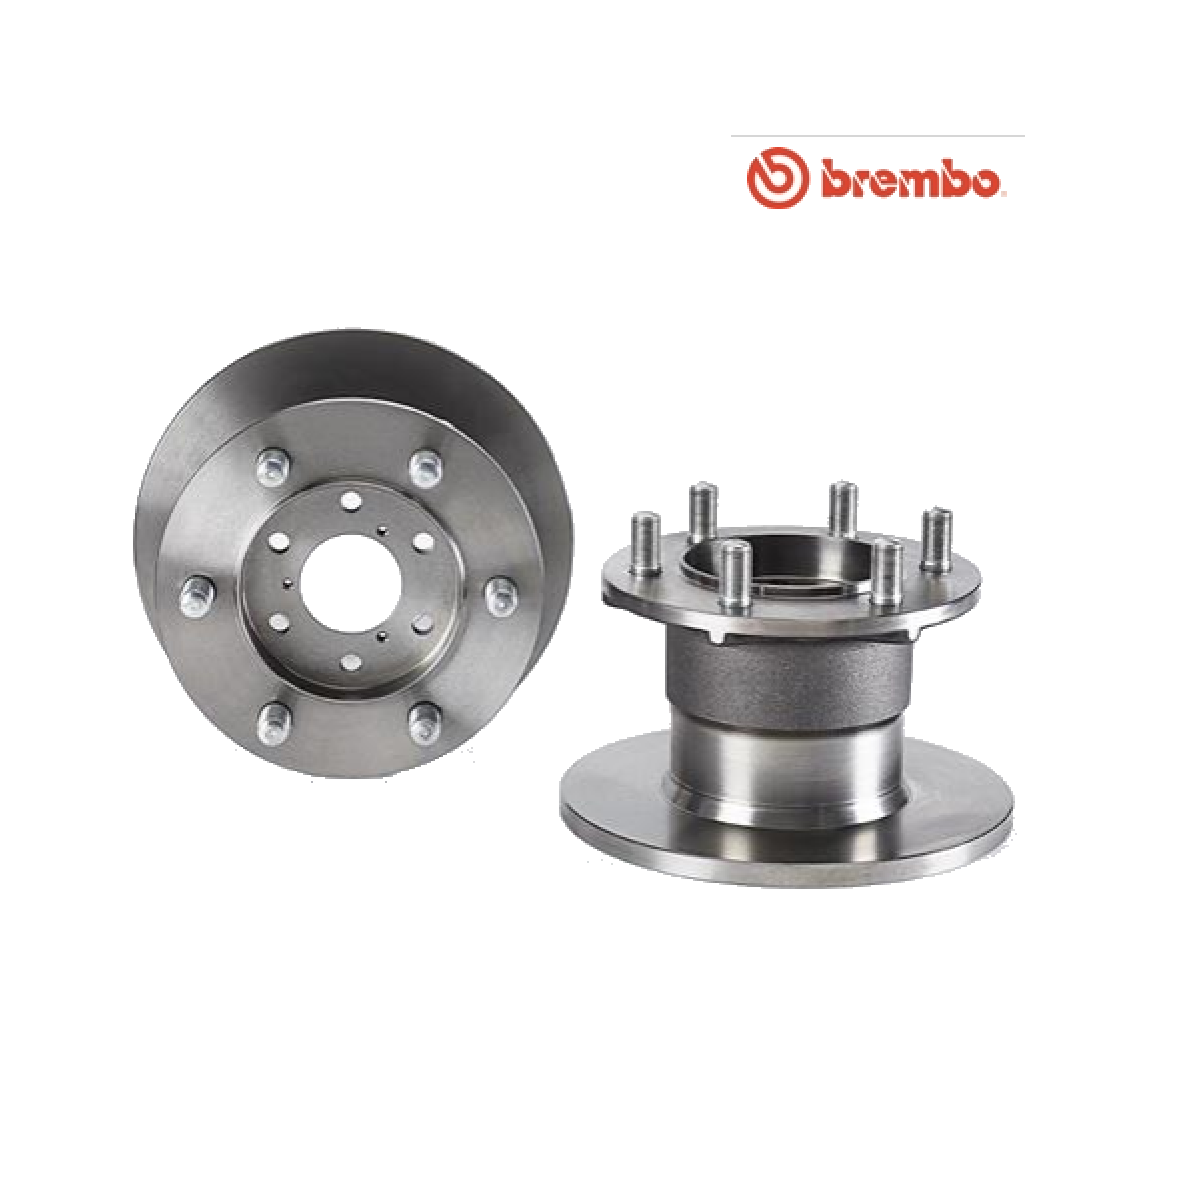 PAIR OF FRONT BRAKE DISCS IVECO DAILY II BREMBO FOR 1904528